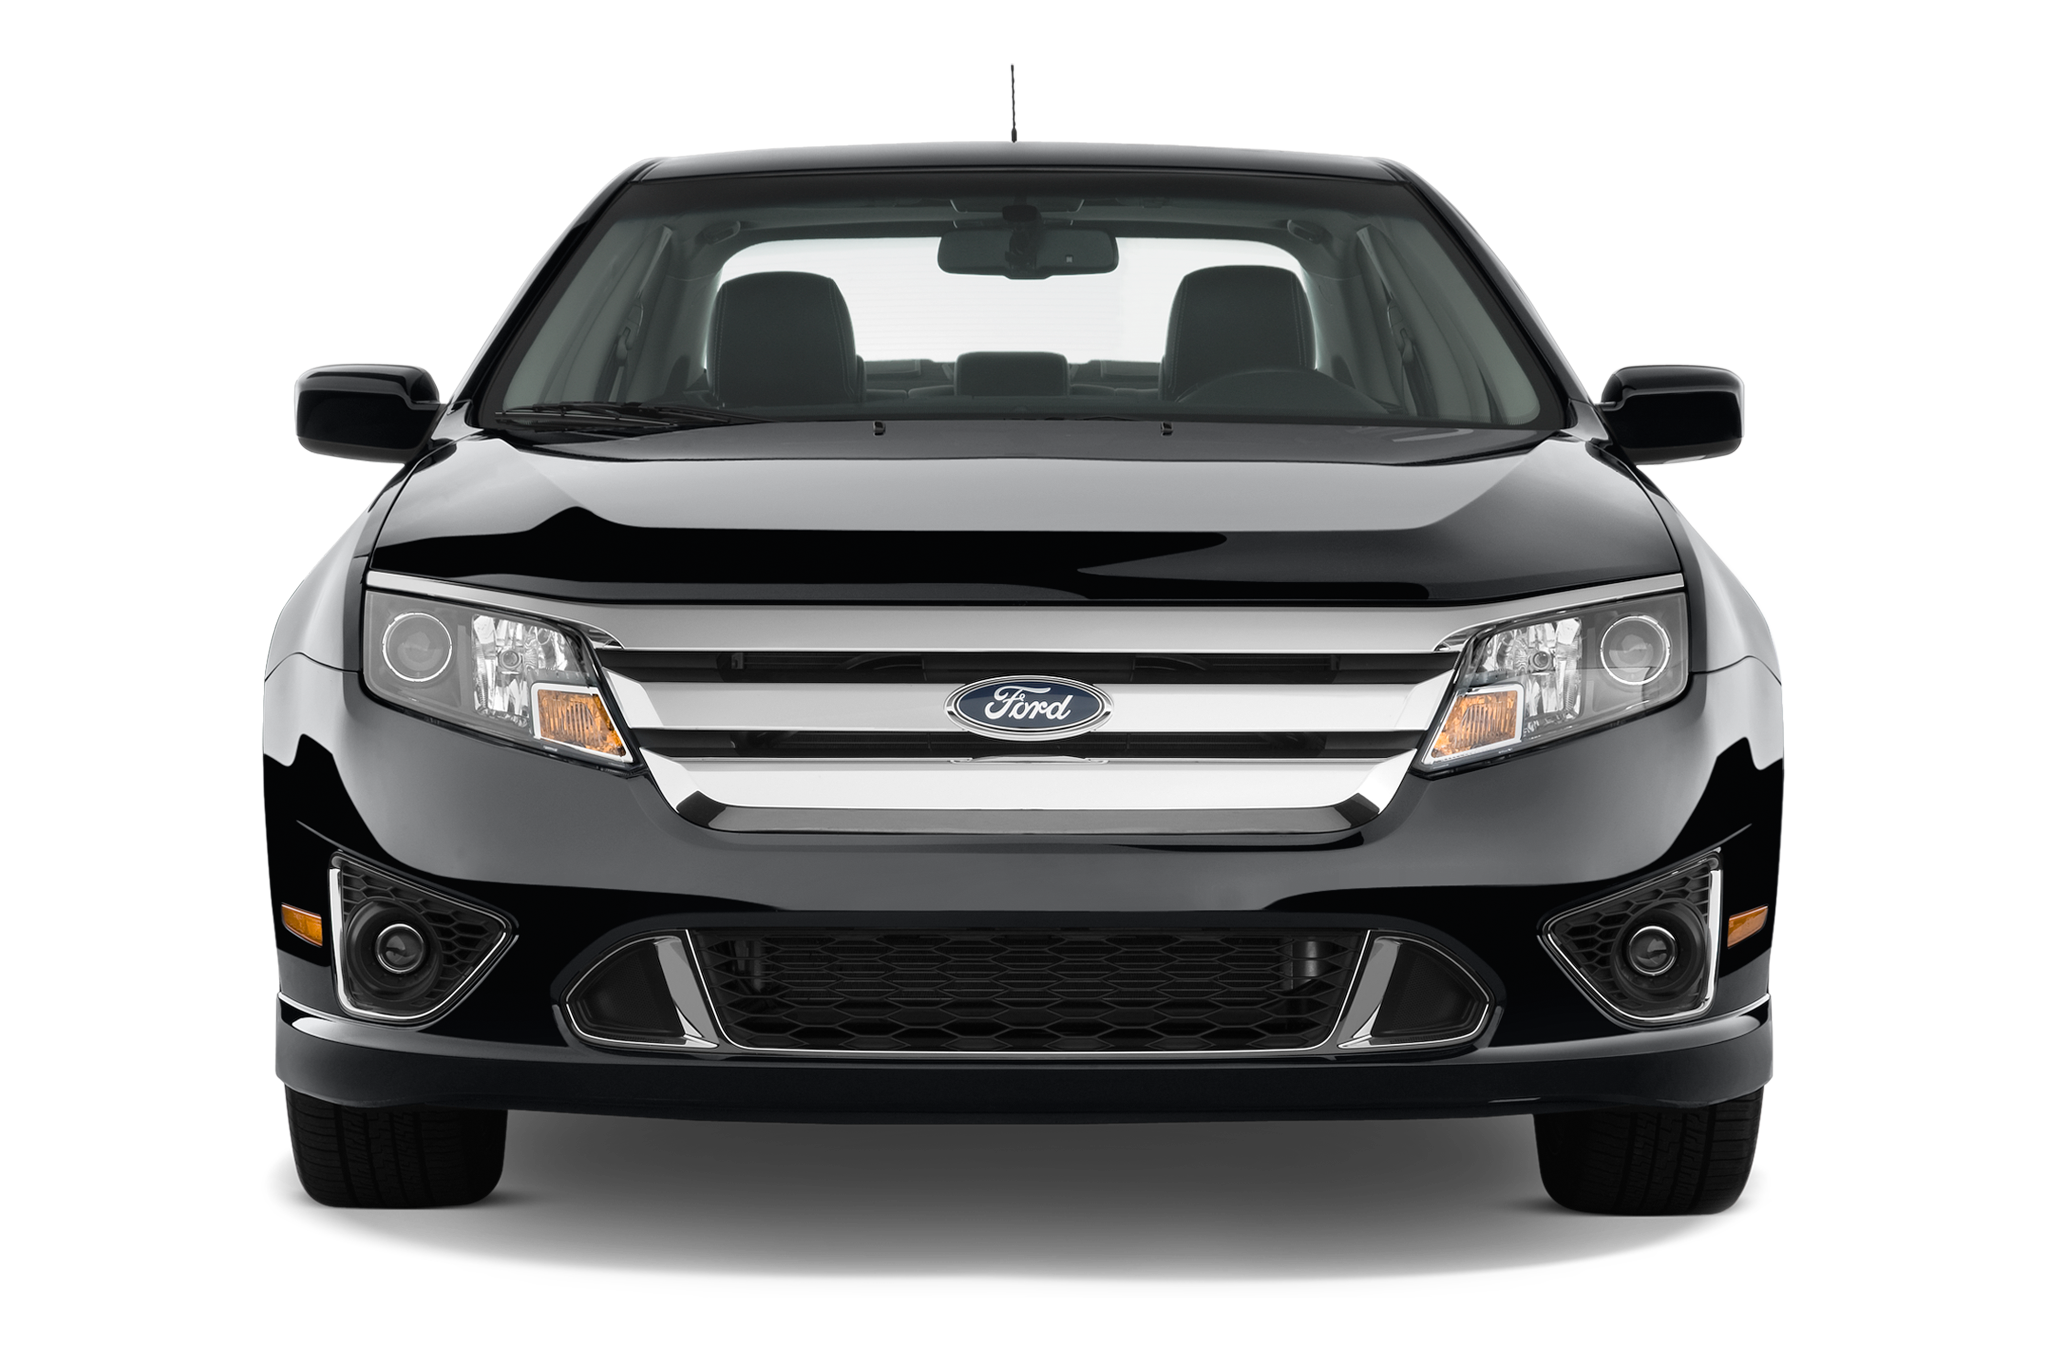 ford fusion north america i 2005 2012 sedan outstanding cars. Black Bedroom Furniture Sets. Home Design Ideas